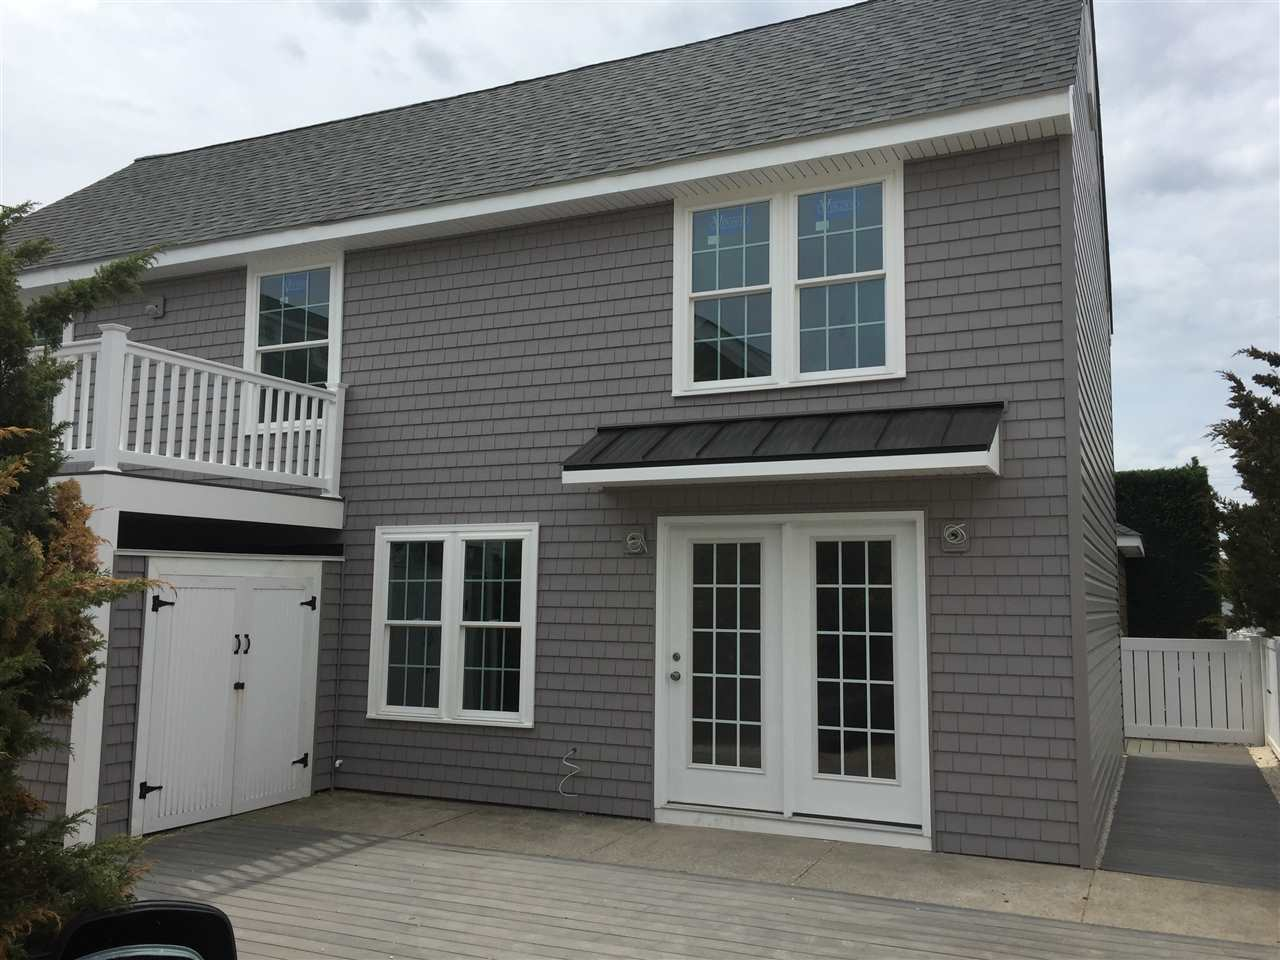 153, Unit B Rear 83rd, Stone Harbor